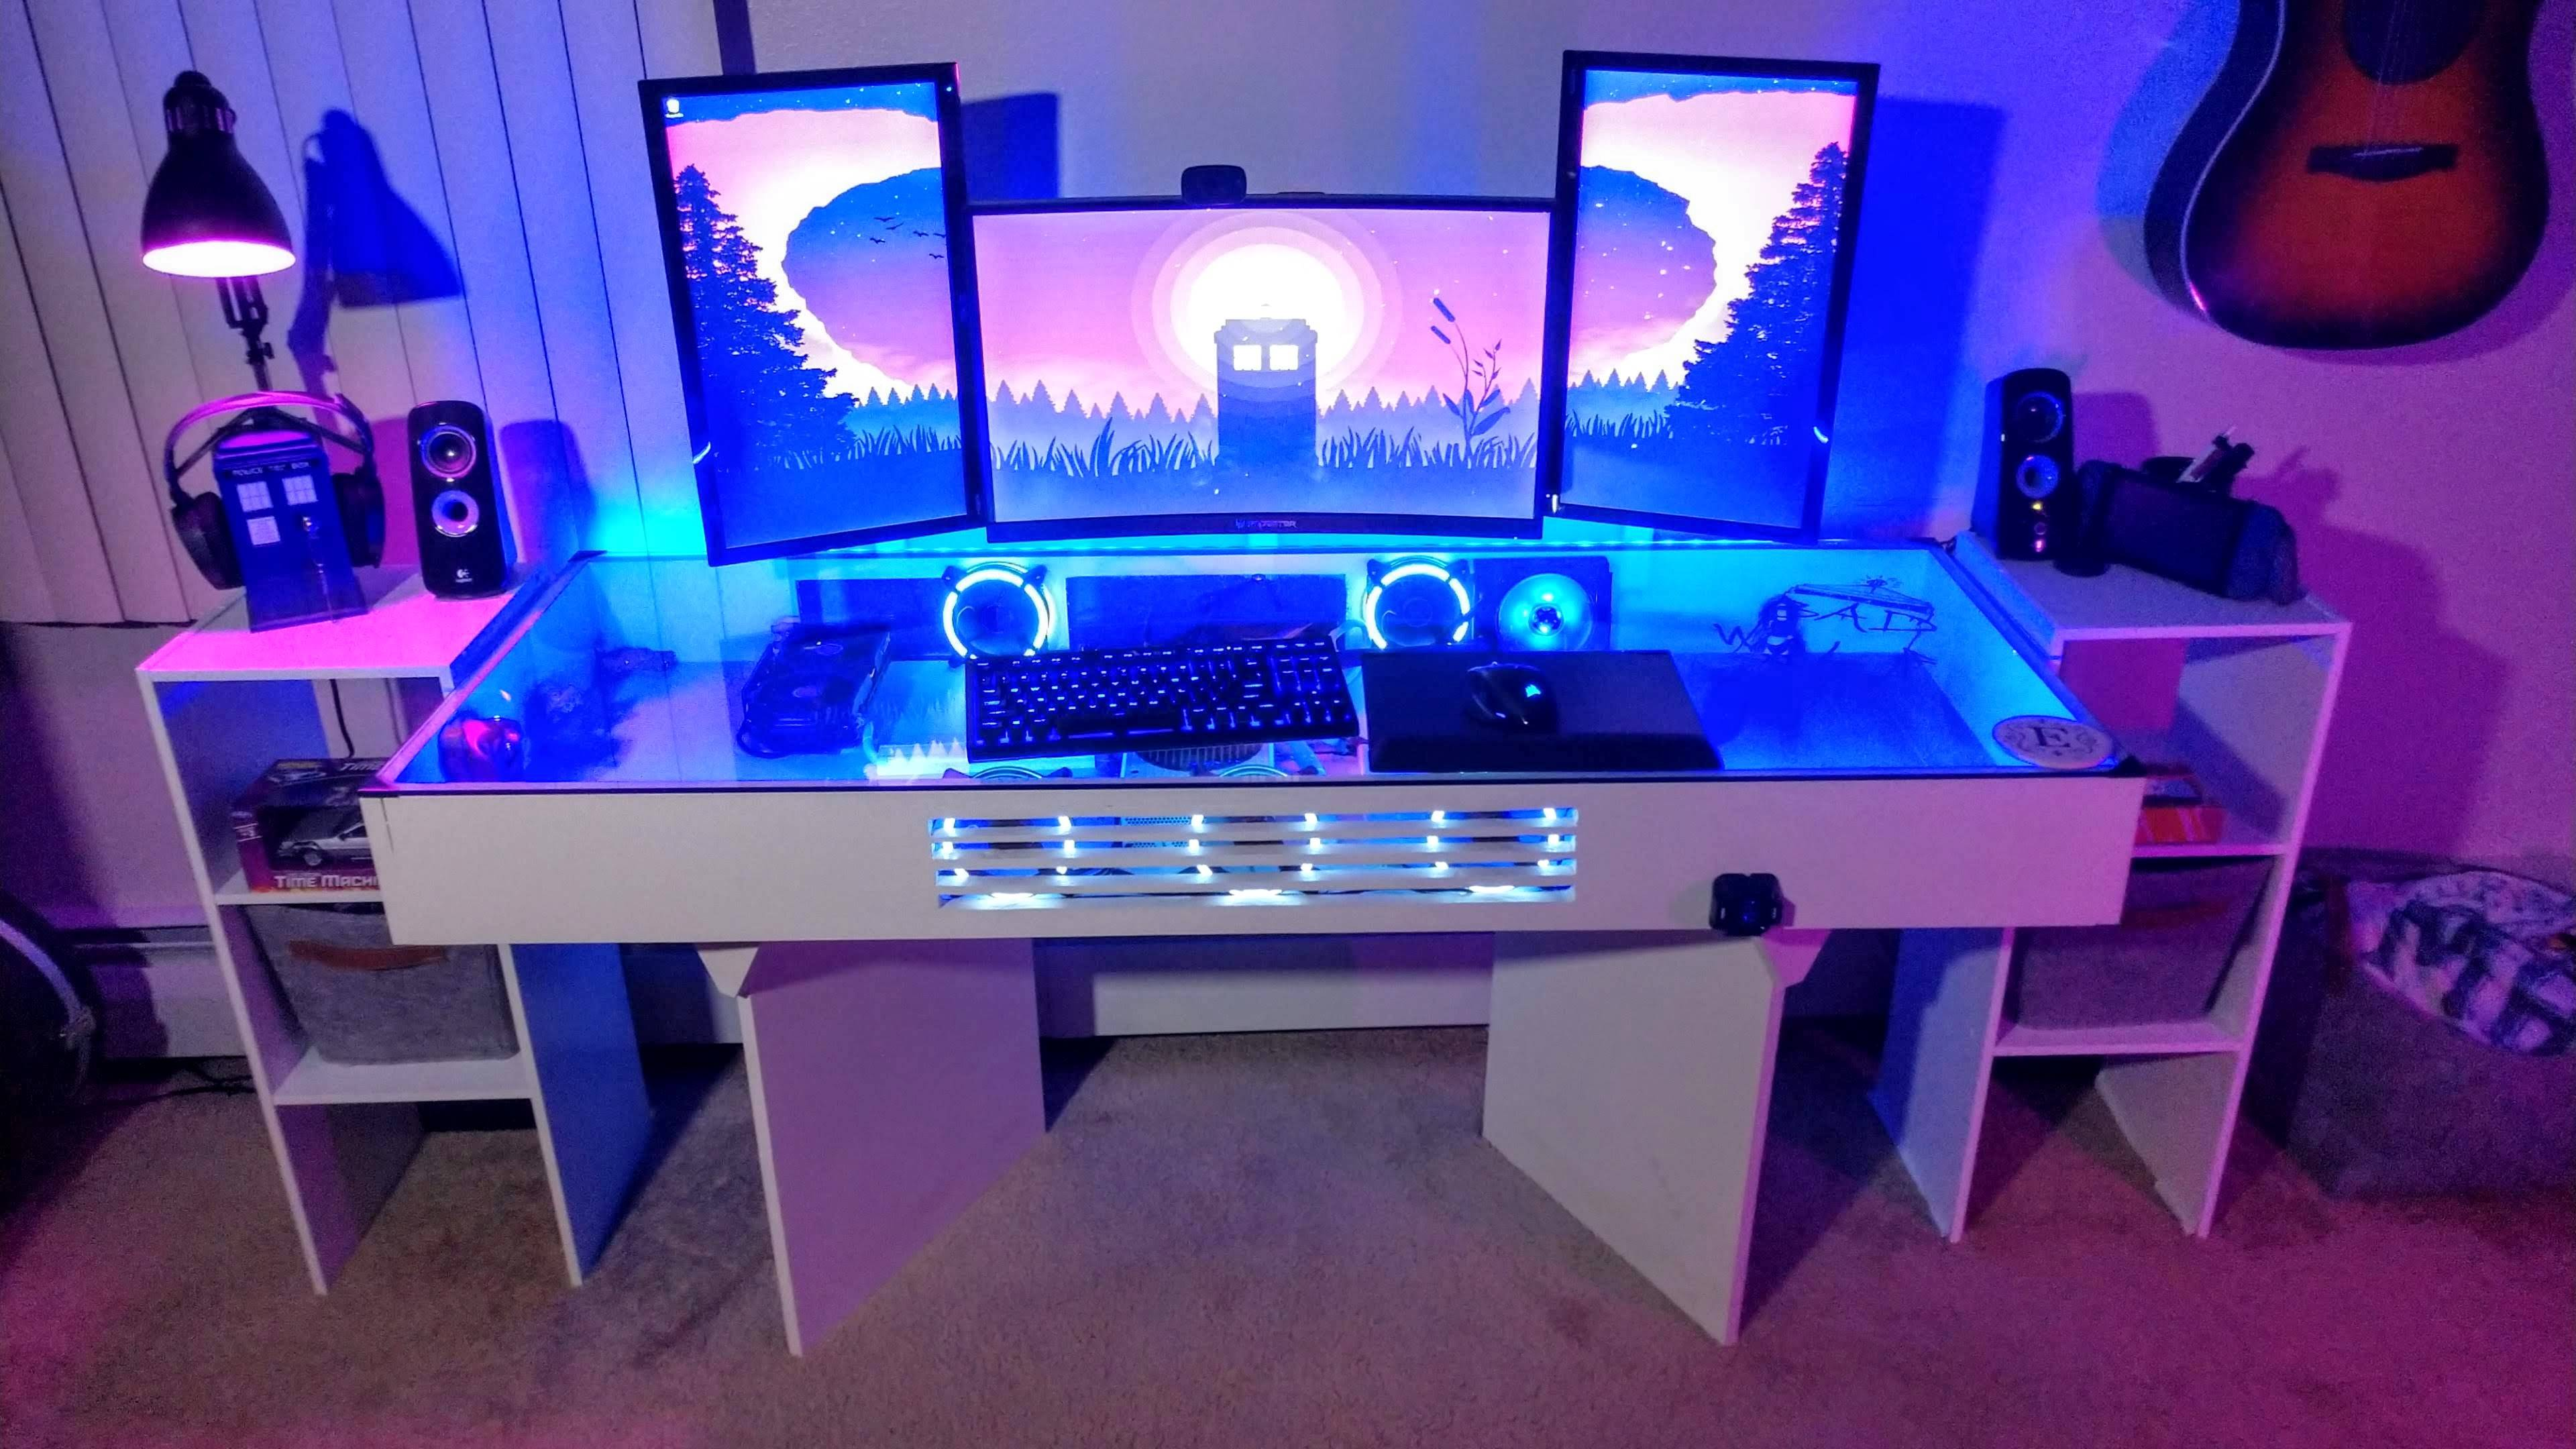 collinedwards's Setup - The TARDIS | Scooget